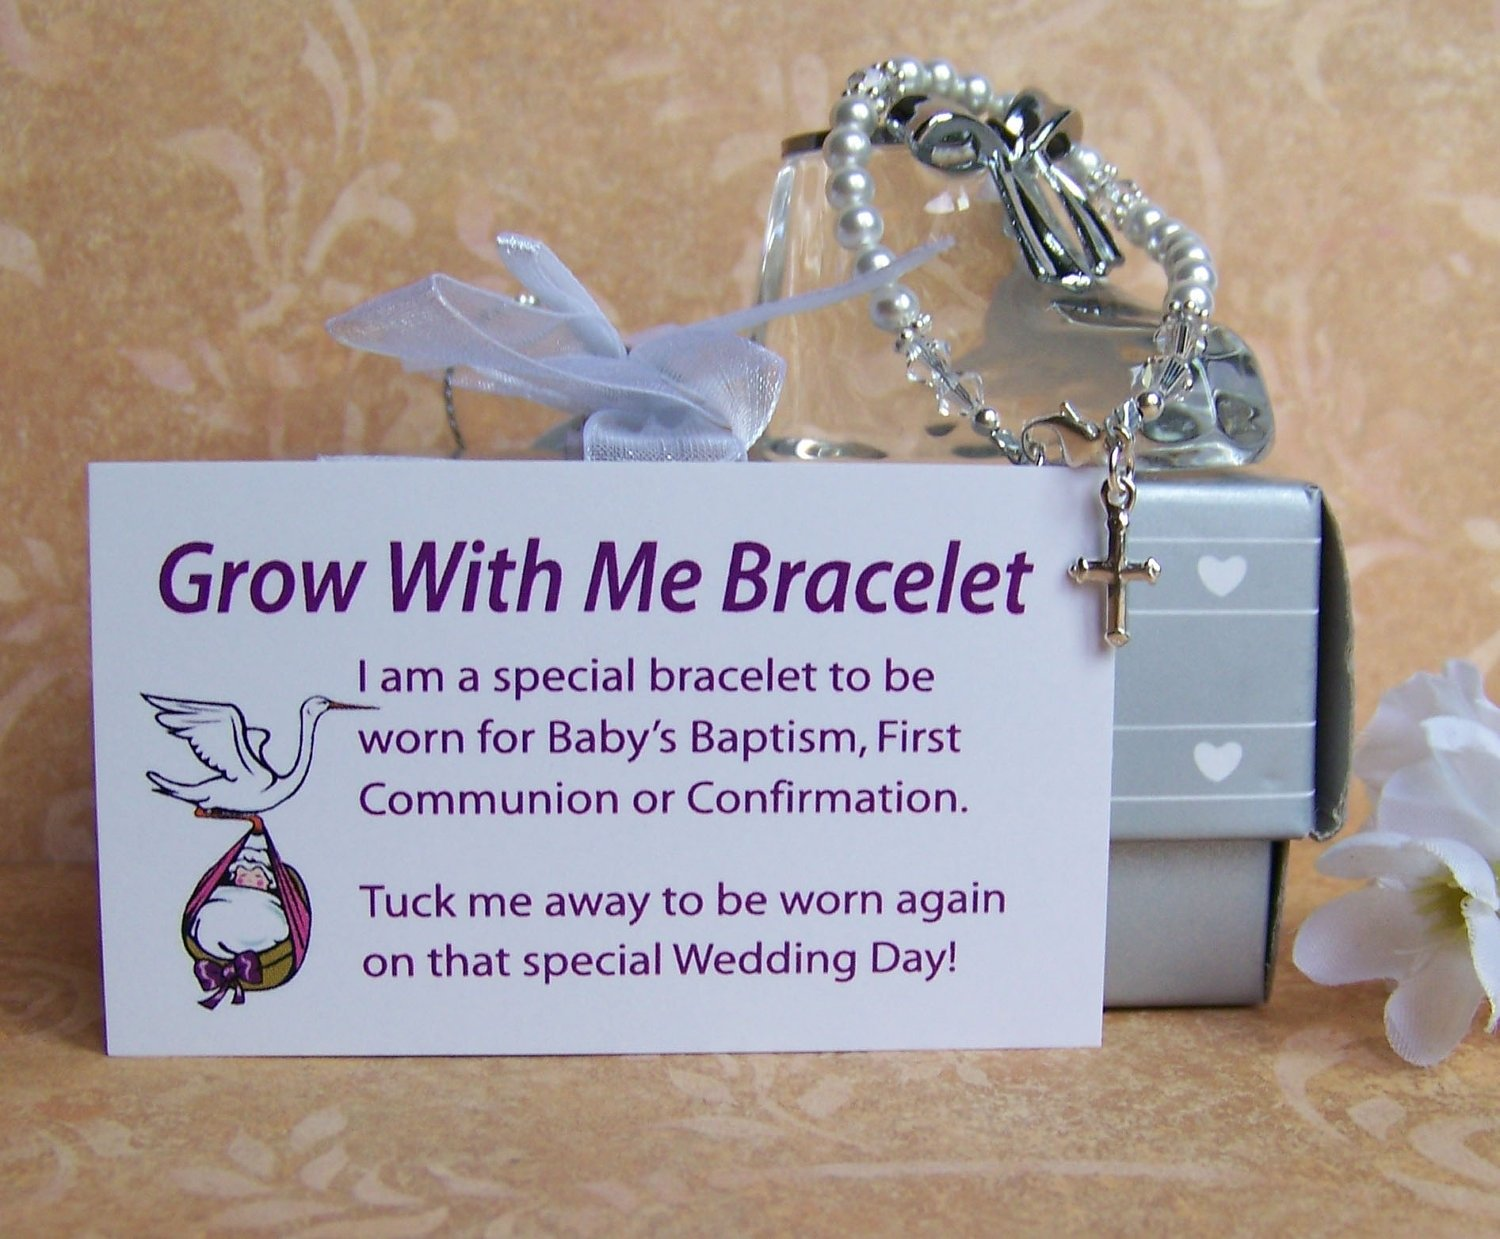 10 Unique Gift Ideas For Baptism Boy baby girl baptism bracelet grow with me 38 00 via etsy its a 2020